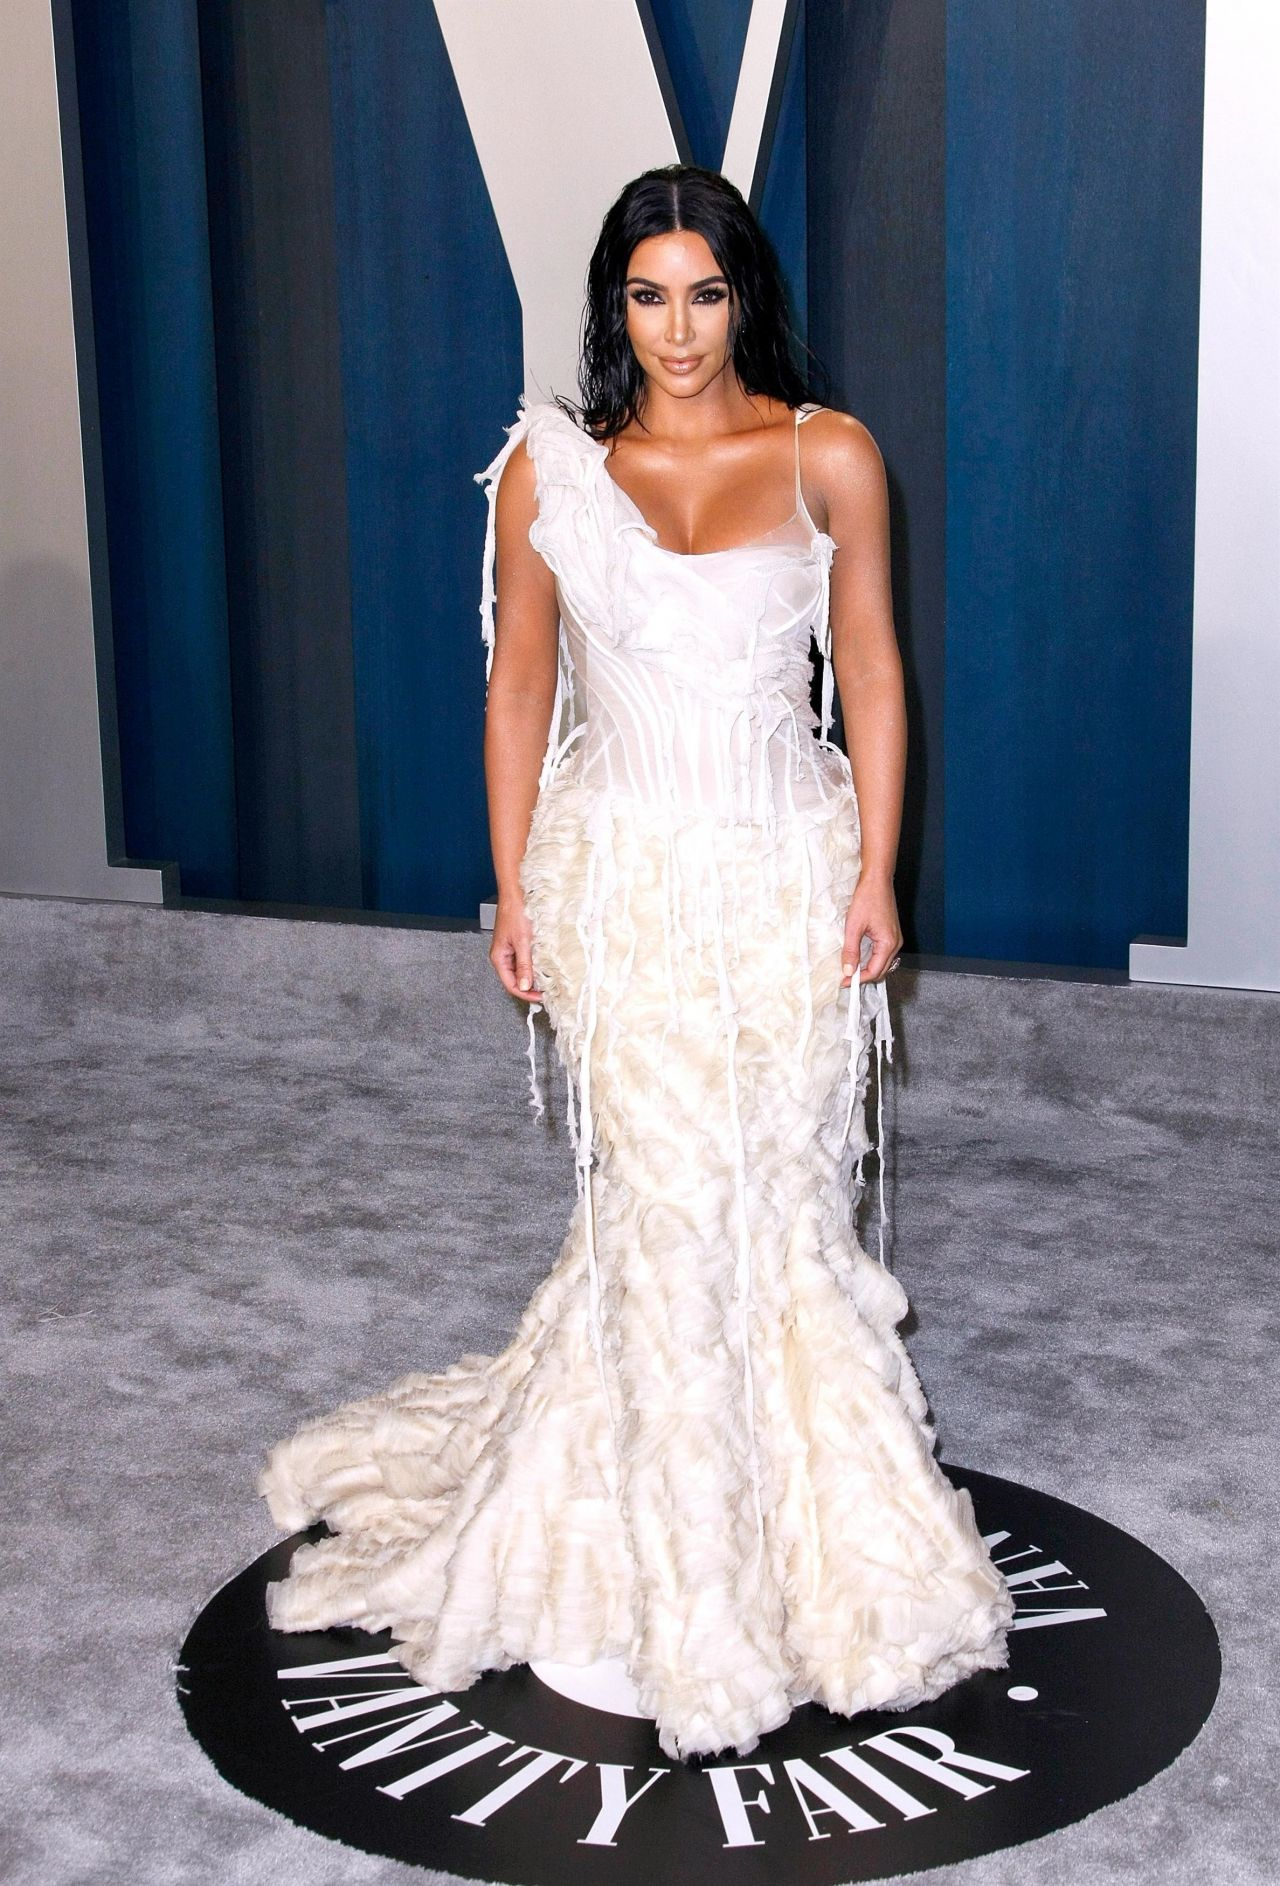 kim-kardashian-west-in-alexander-mcqueen-2020-vanity-fair-oscar-party